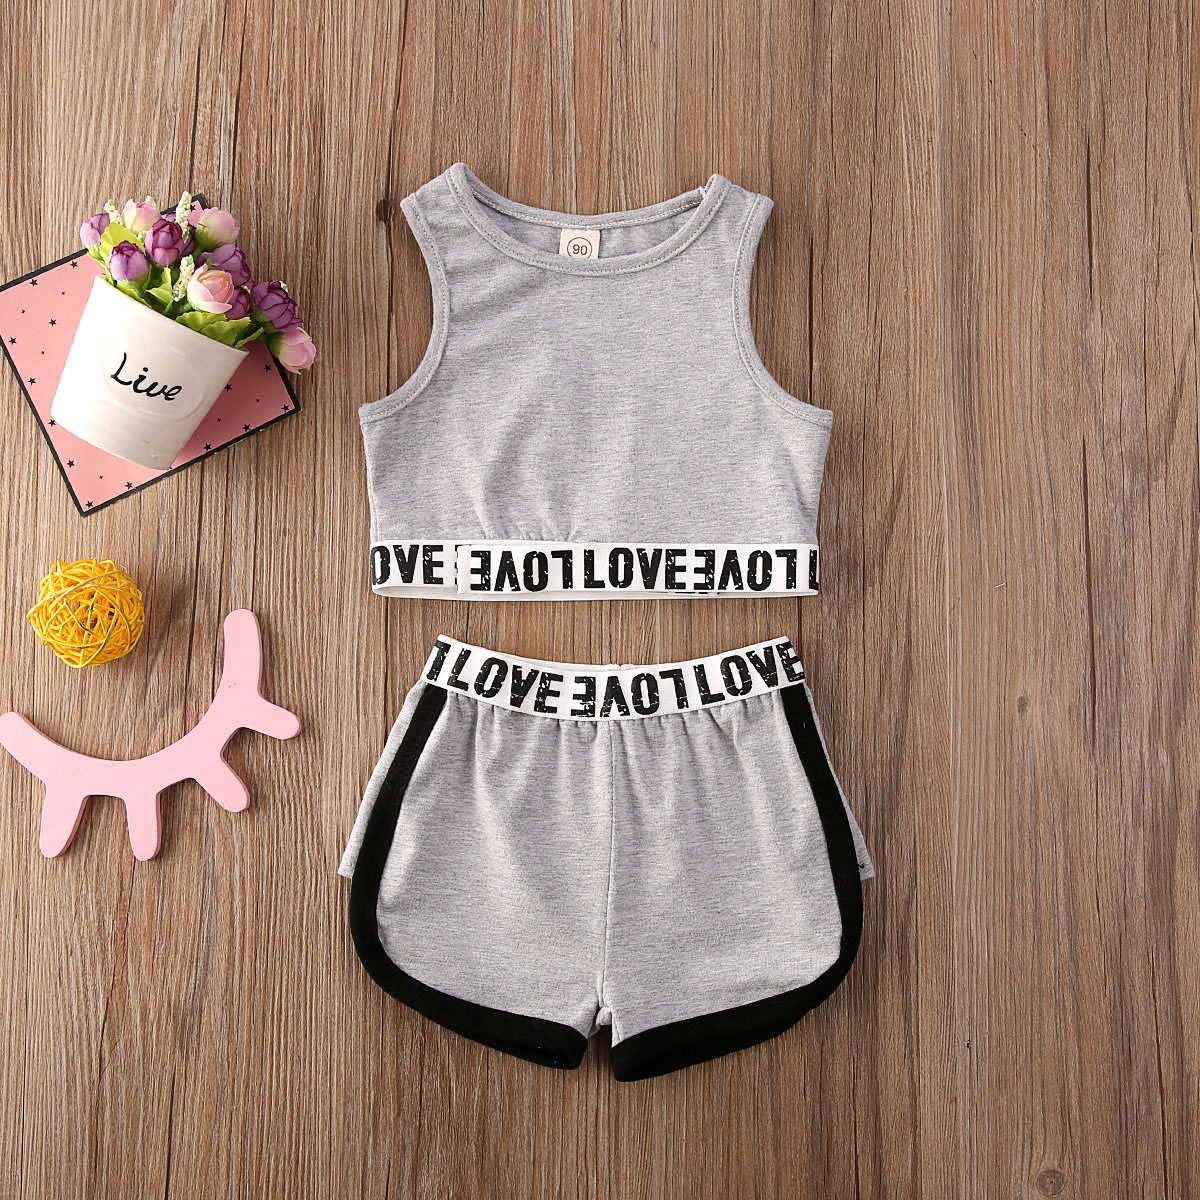 Pudcoco Toddler Baby Girl Clothes Solid Color Sleeveless Crop Tops Short Pants 2Pcs Outfits Cotton Clothes